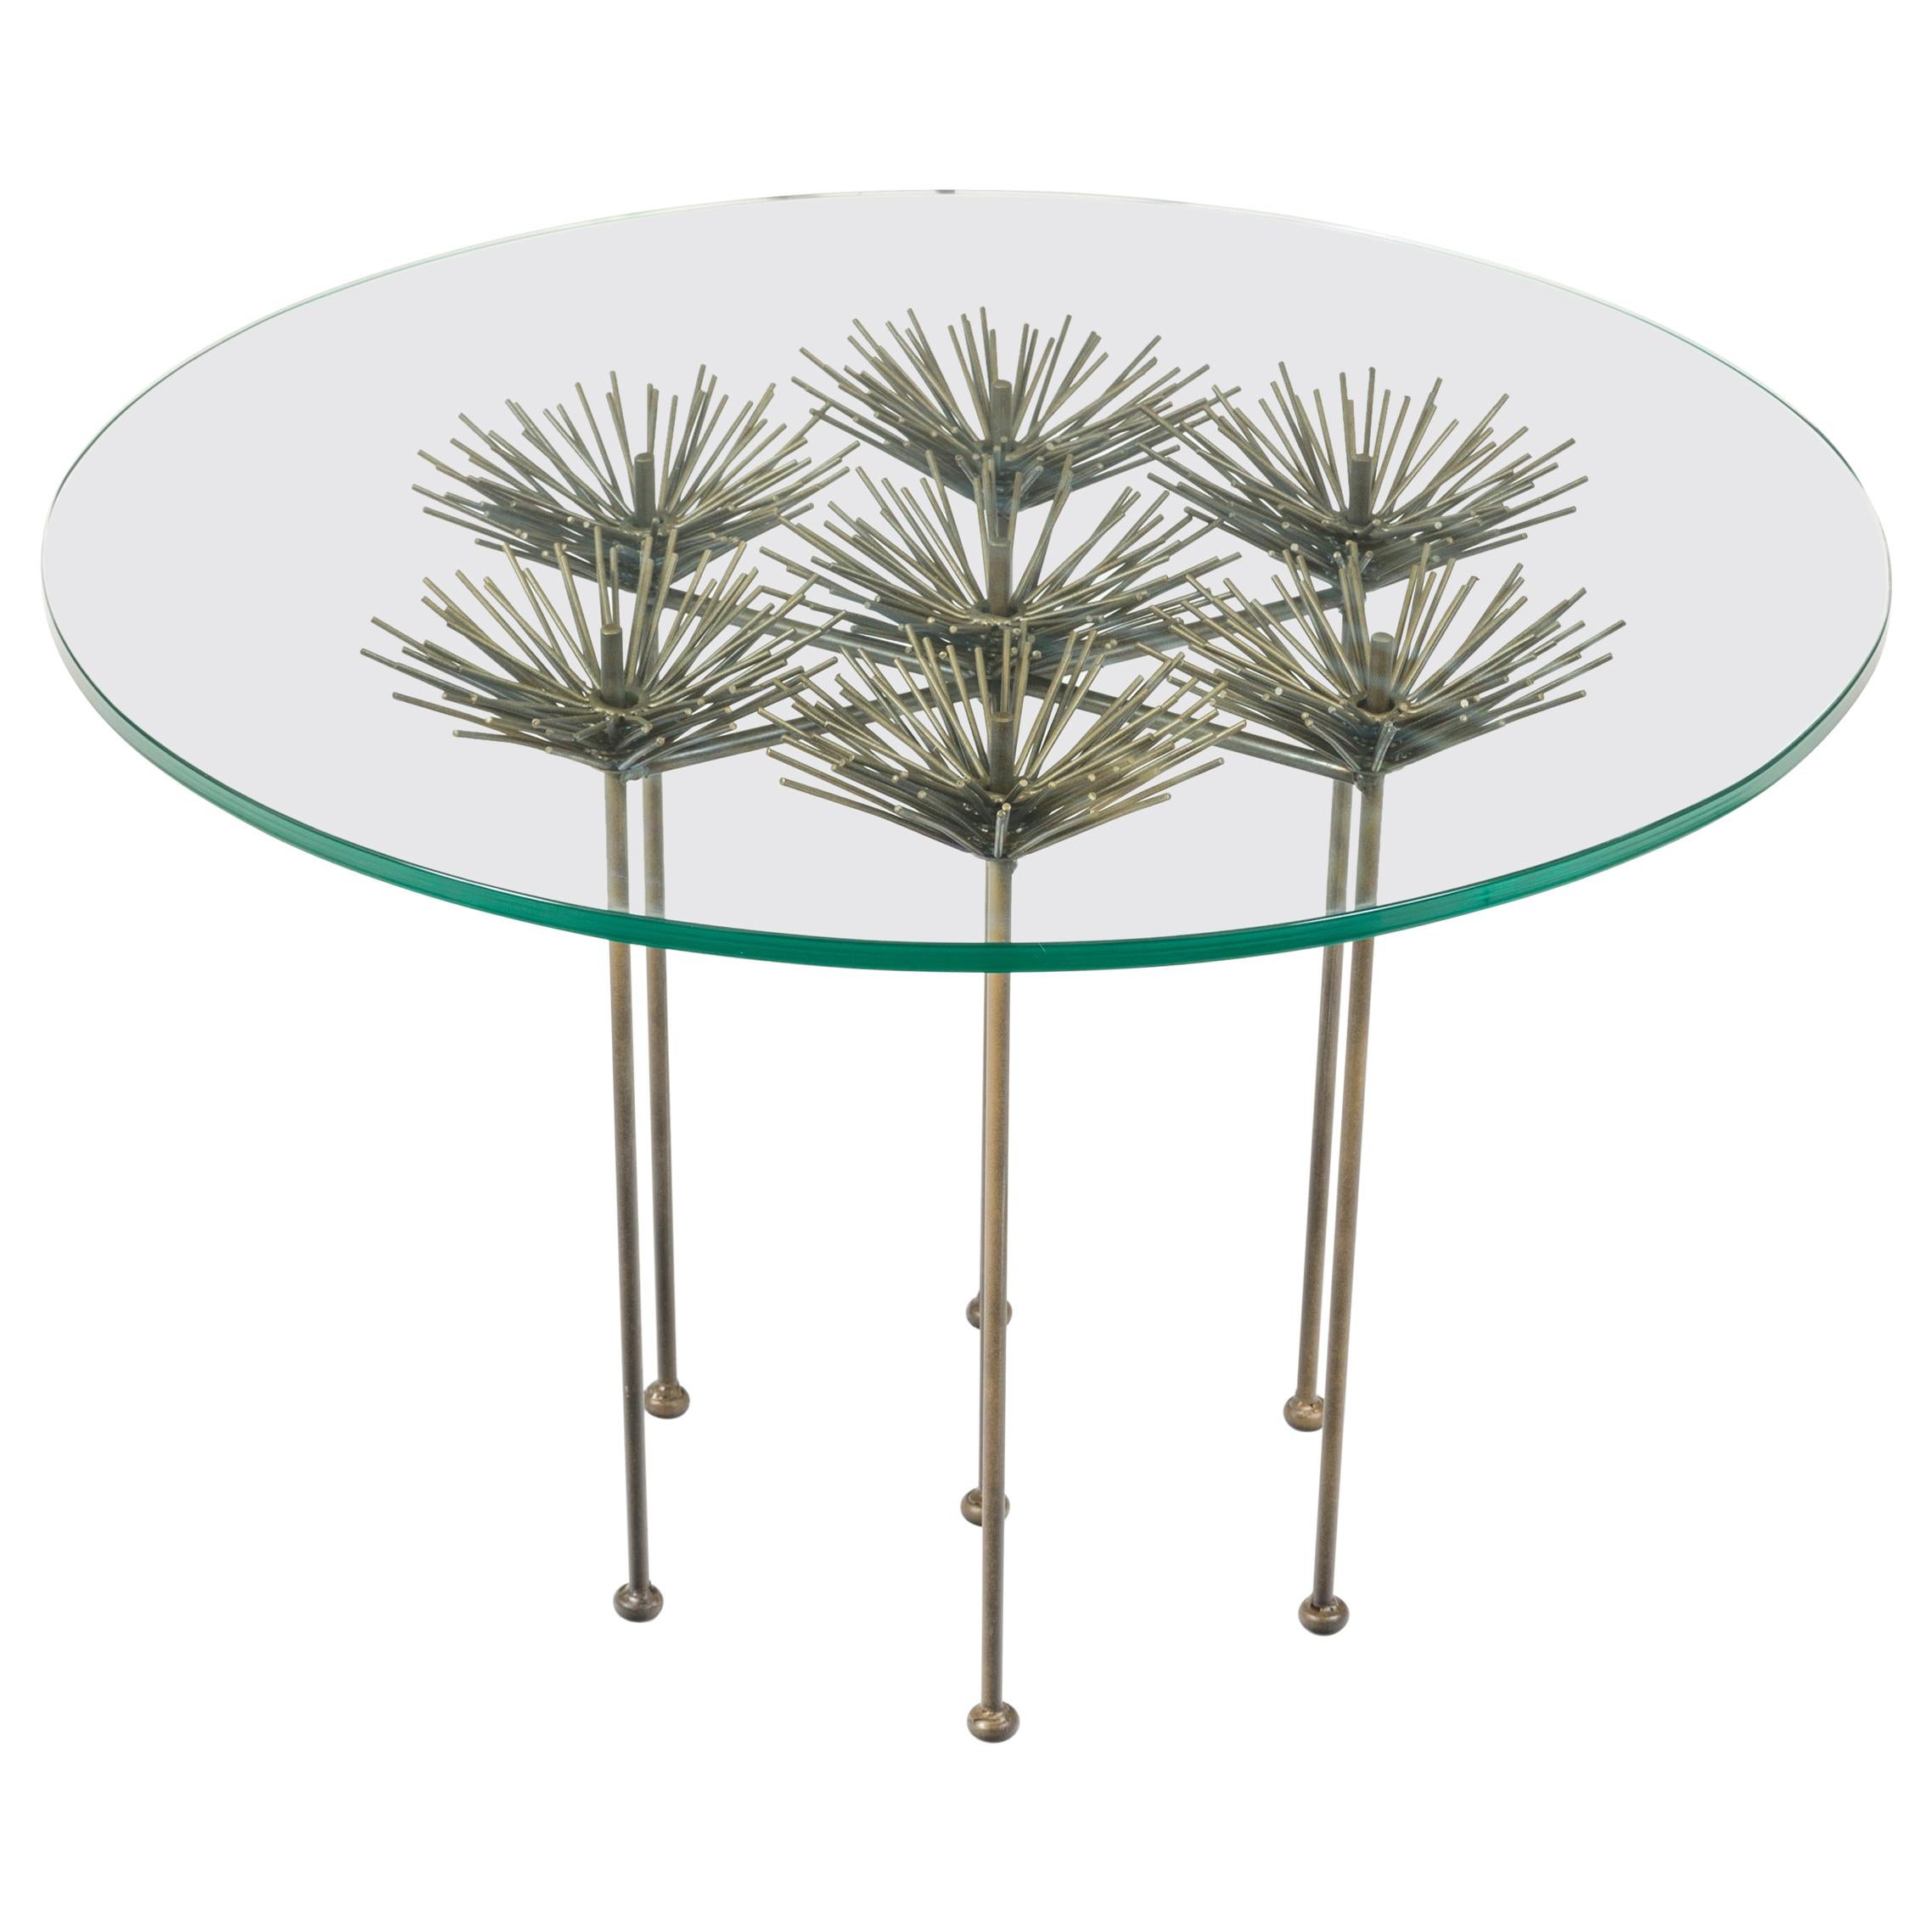 Brutalist Bronze Gilt Floral Table with Glass Top by Lost City Arts